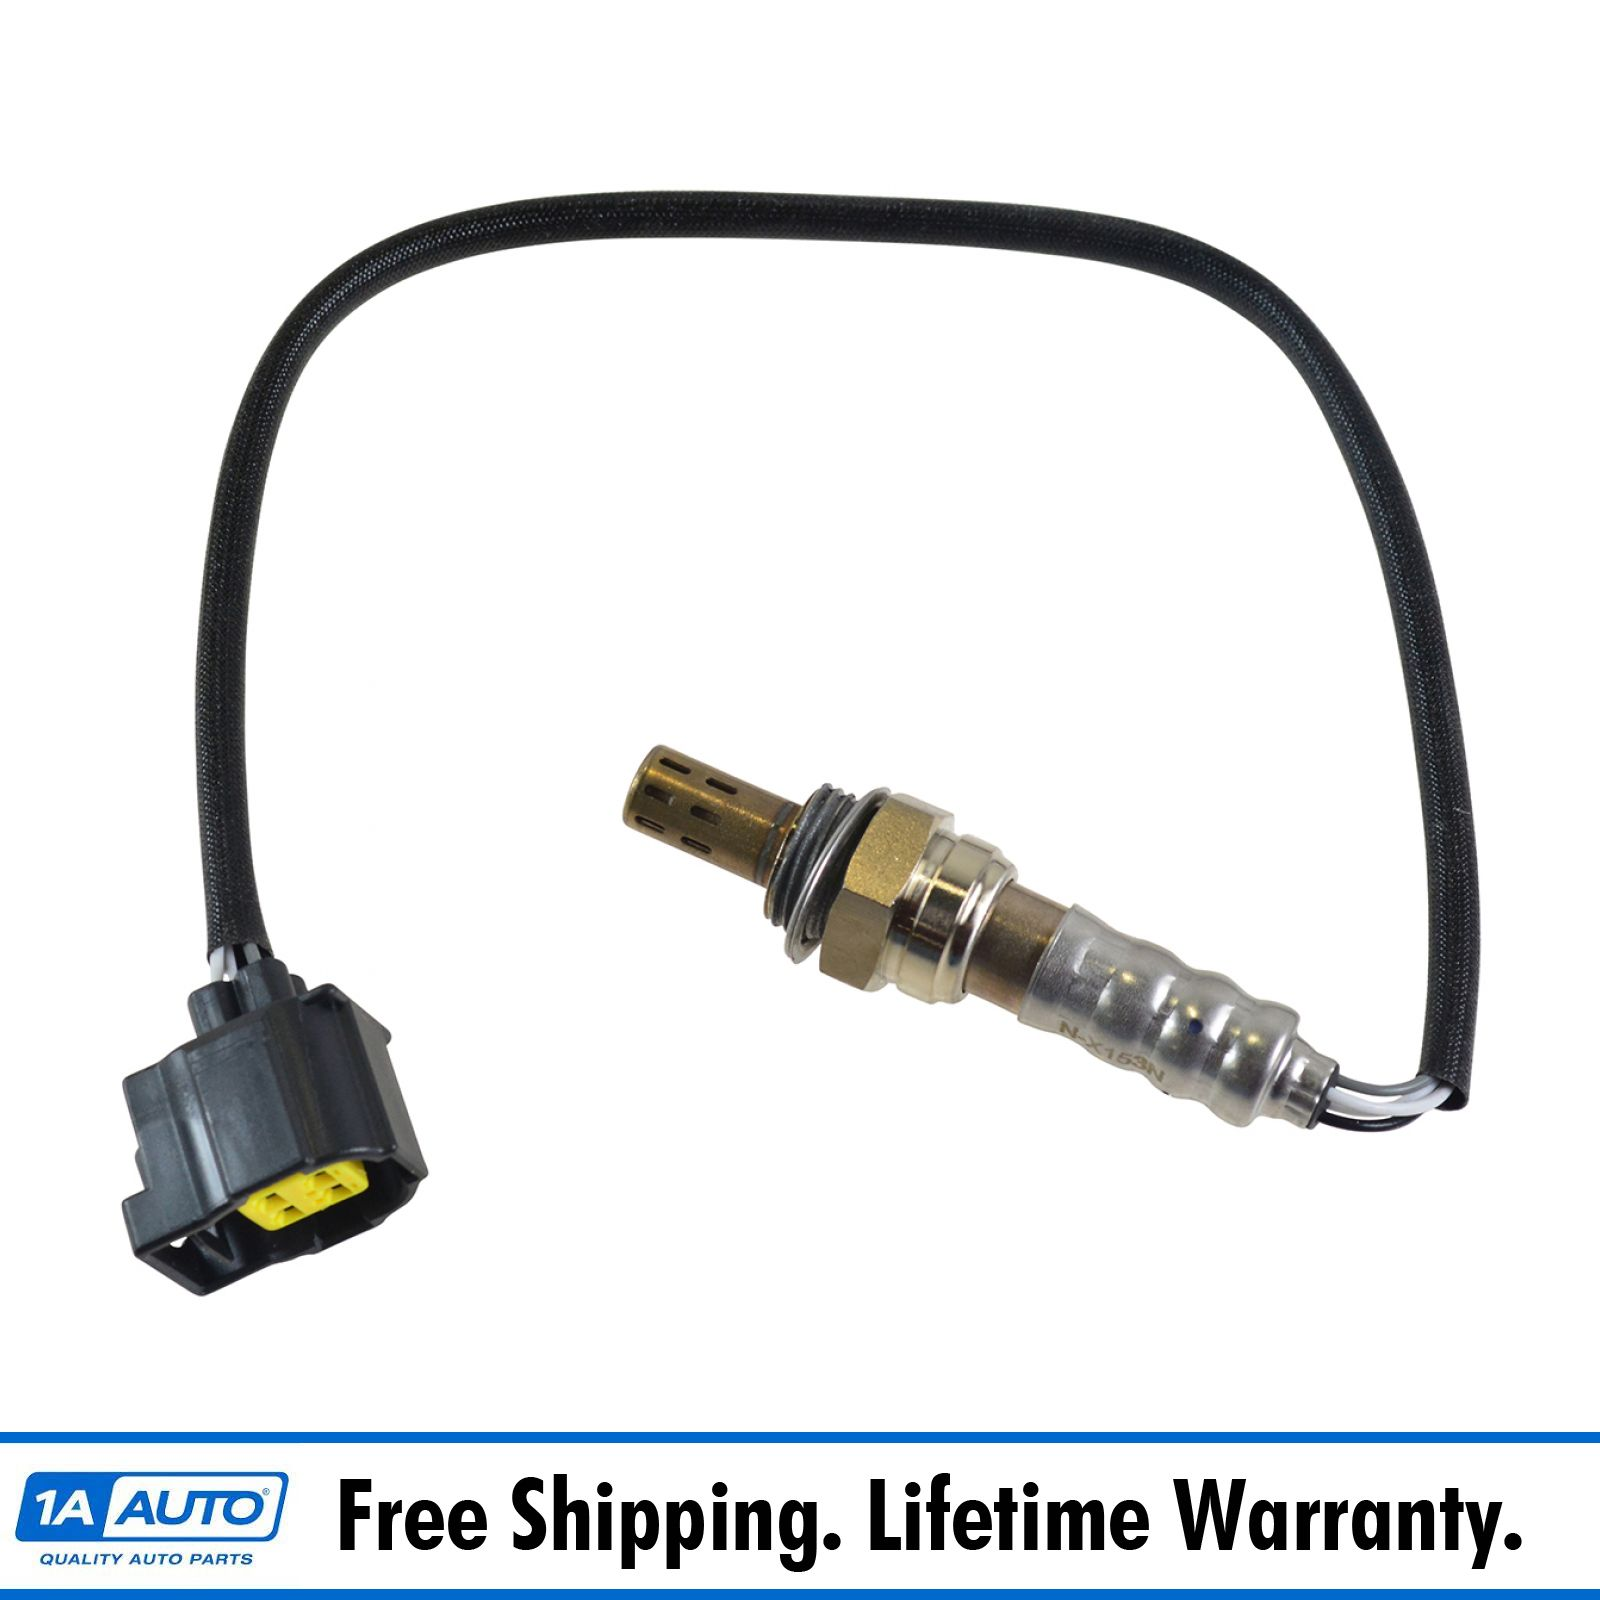 Engine Exhaust O2 02 Oxygen Sensor Direct Fit for Acura Honda SUV Truck Van